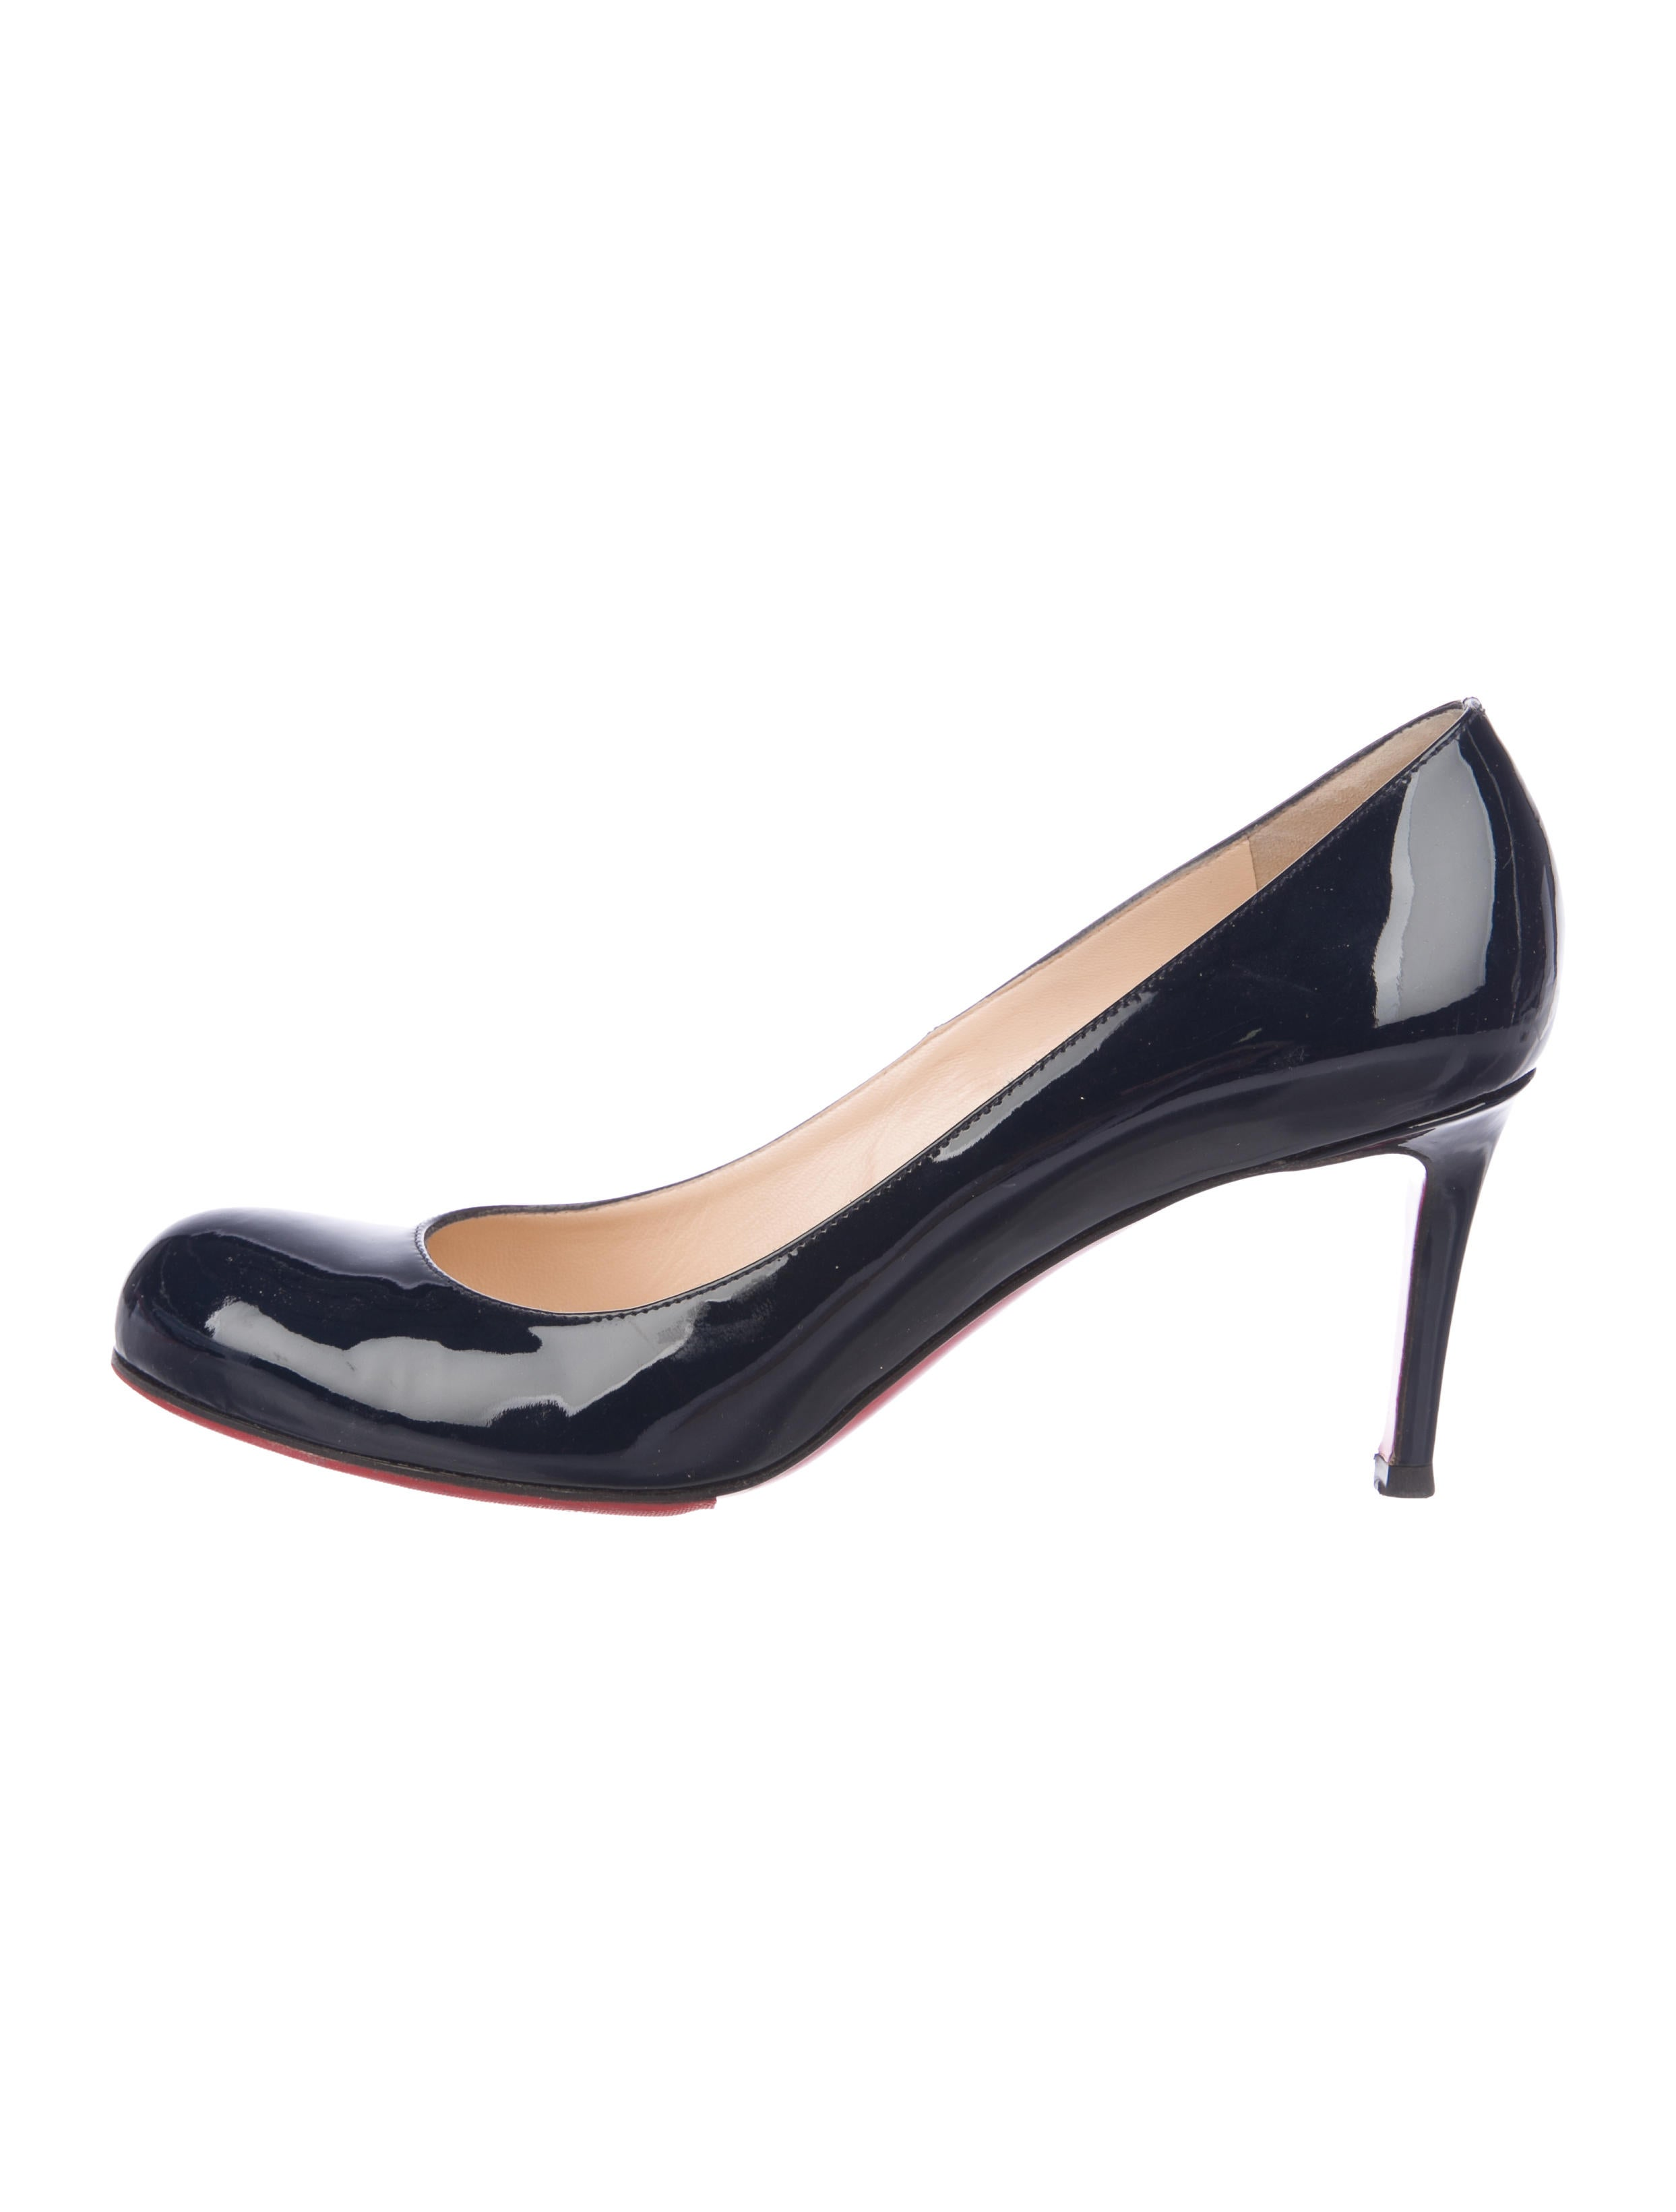 927ef0113b8 Christian Louboutin Shoes